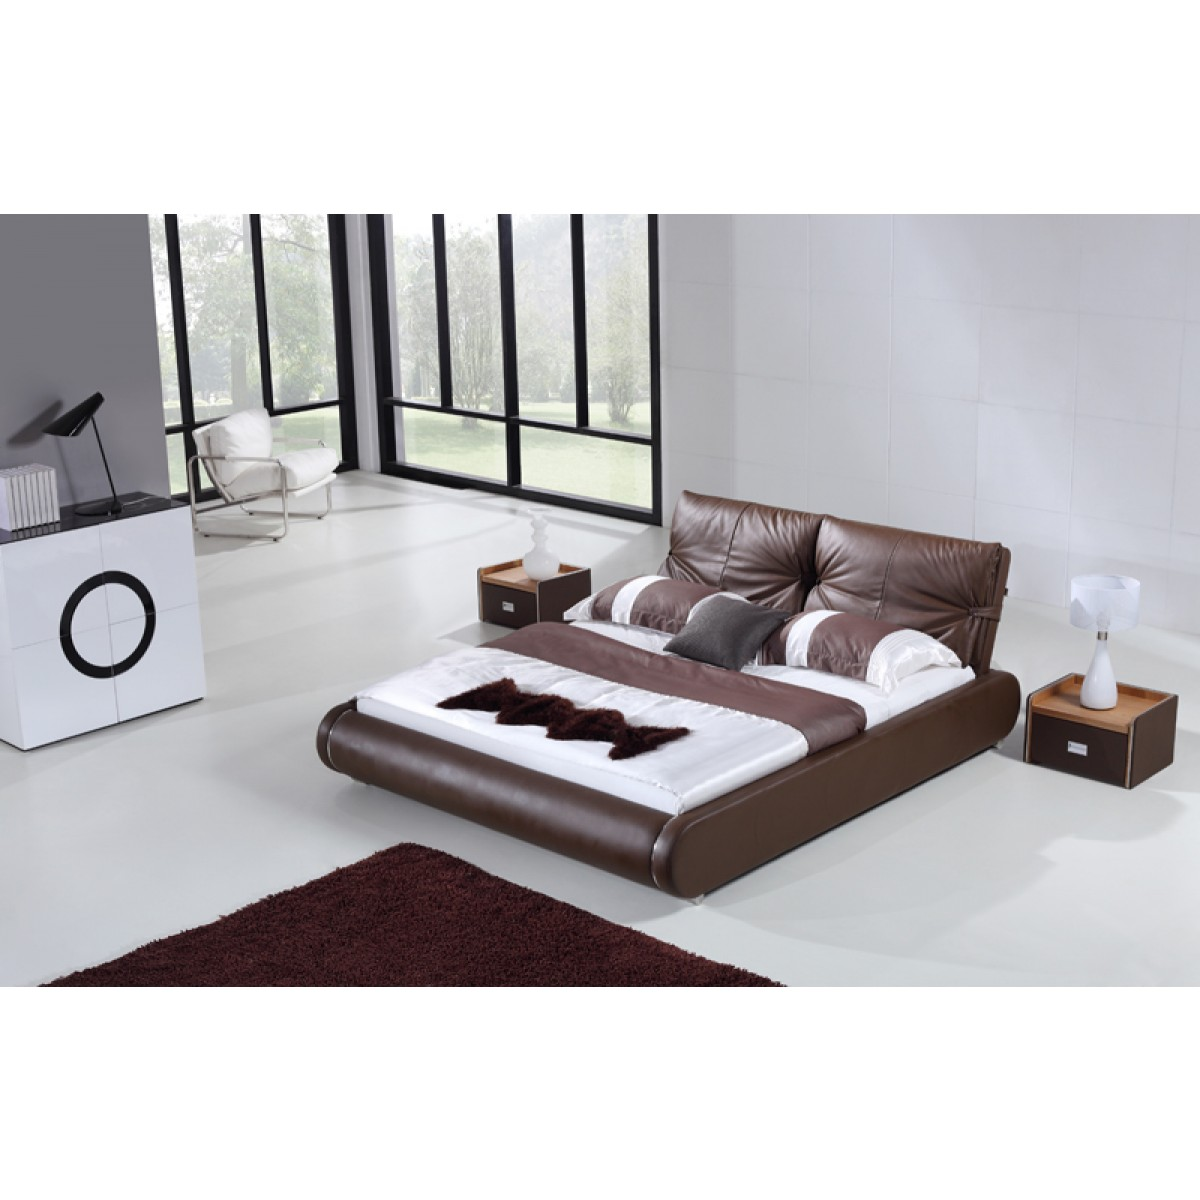 lit personnalisable richard 140 160 180 cuir ou pu option matelas lits. Black Bedroom Furniture Sets. Home Design Ideas